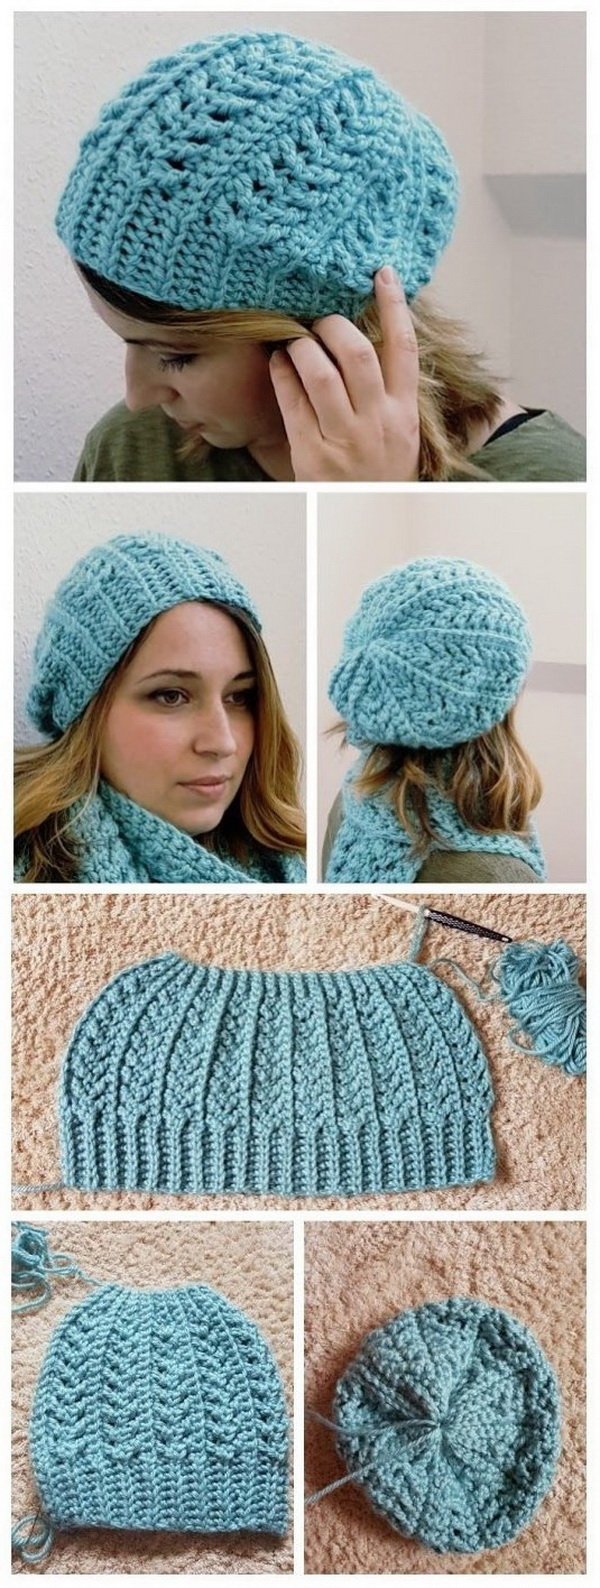 Easy and fun crochet projects with free patterns and tutorials crochet flow hat crochet hat makes an ideal first project for beginners by learning dt1010fo